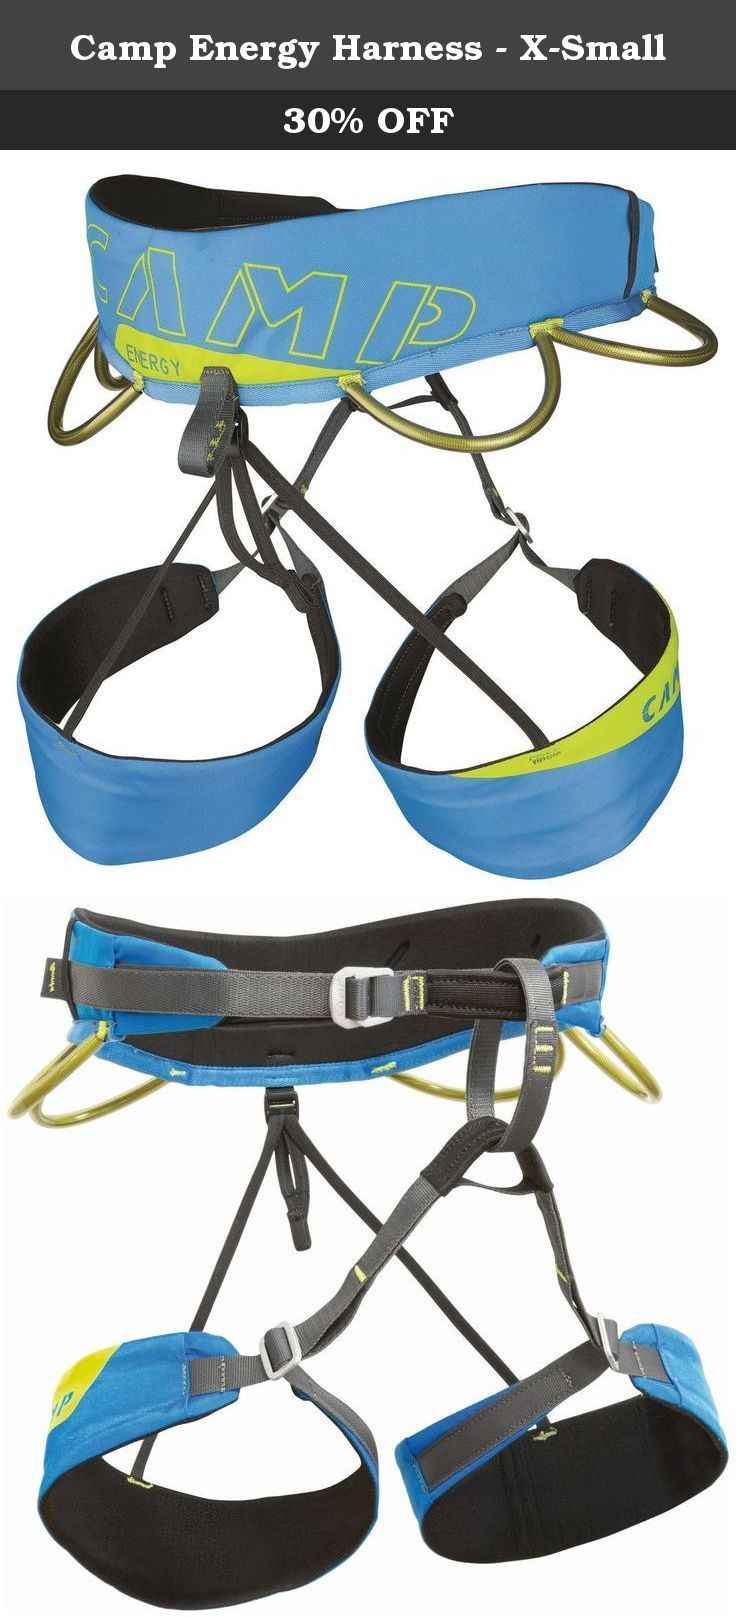 Camp Energy Harness - X-Small. A lightweight and comfortable harness designed for rock climbing at every level. The versatile design of the Energy makes it a great choice for any kind of climbing from gym to sport to trad. The thermo-formed padding molds to the body for exceptional comfort and a profiled fit. The leg loops feature sliding buckles that make them adjustable but not openable. By blending the benefits of fixed and adjustable construction, the leg loops on the Energy are at…